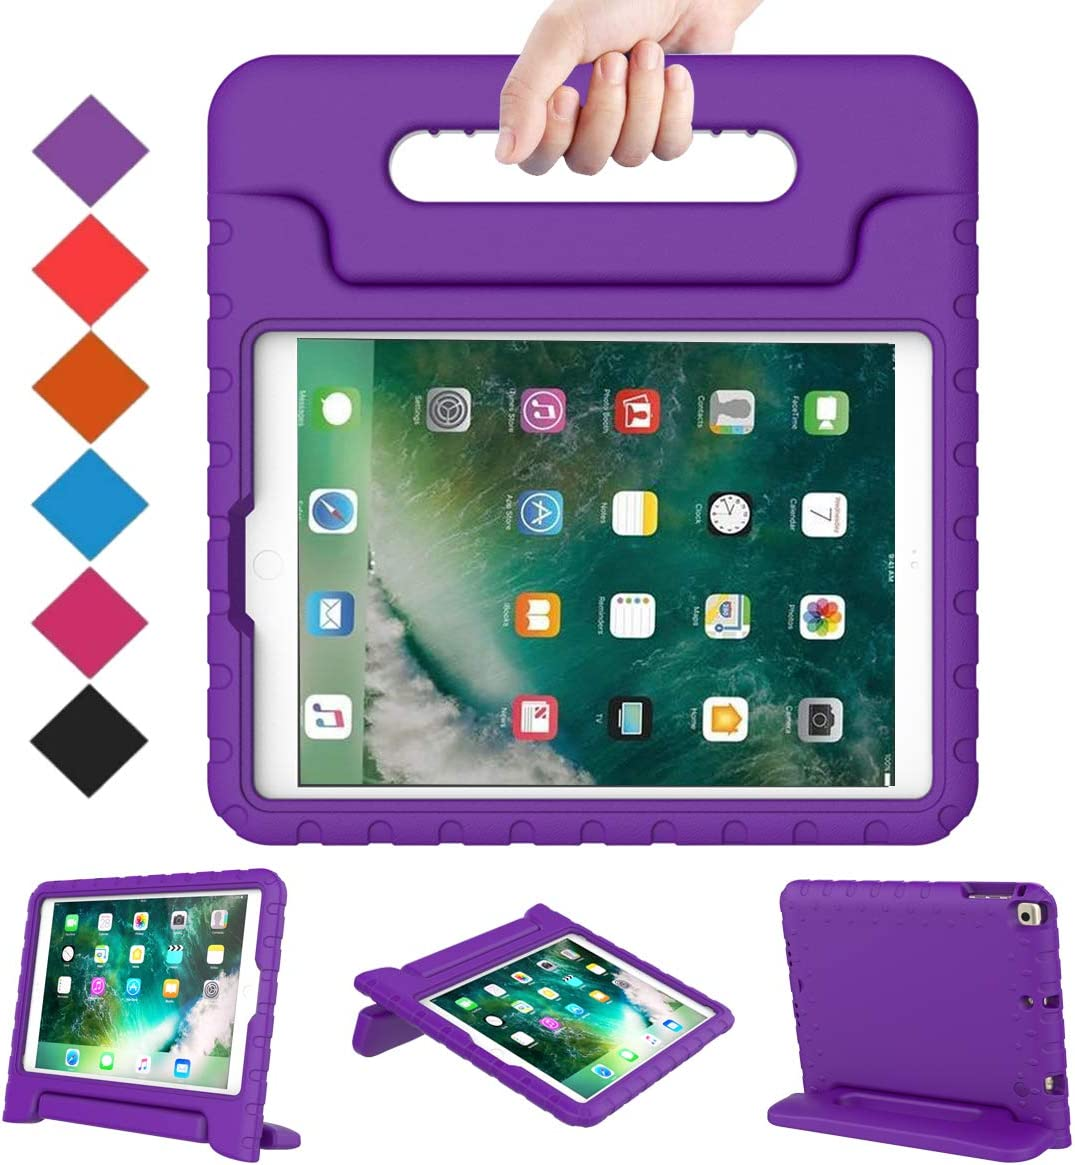 BMOUO Case for New iPad 9.7 Inch 2018/2017 - Shockproof Case Light Weight Kids Case Cover Handle Stand Case for iPad 9.7 Inch 2017/2018 Previous Model - Purple